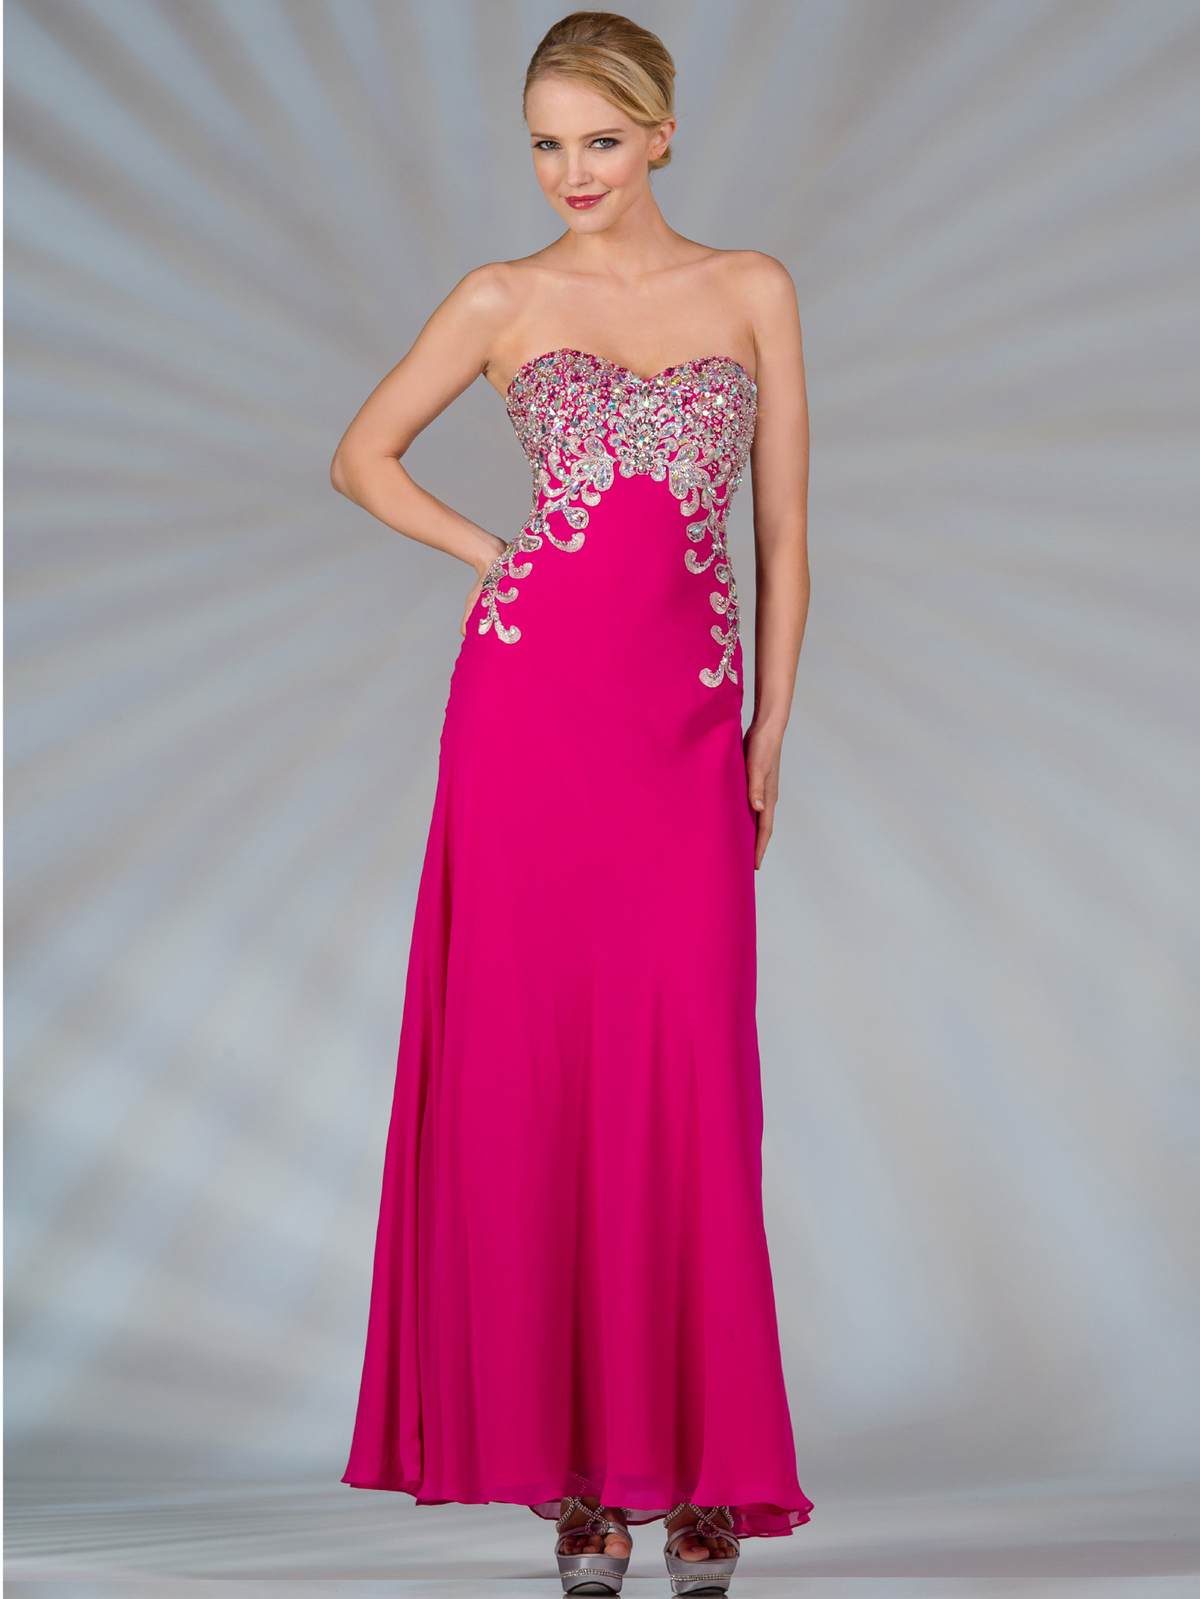 Dress: Fuschia Dress Picture Collection